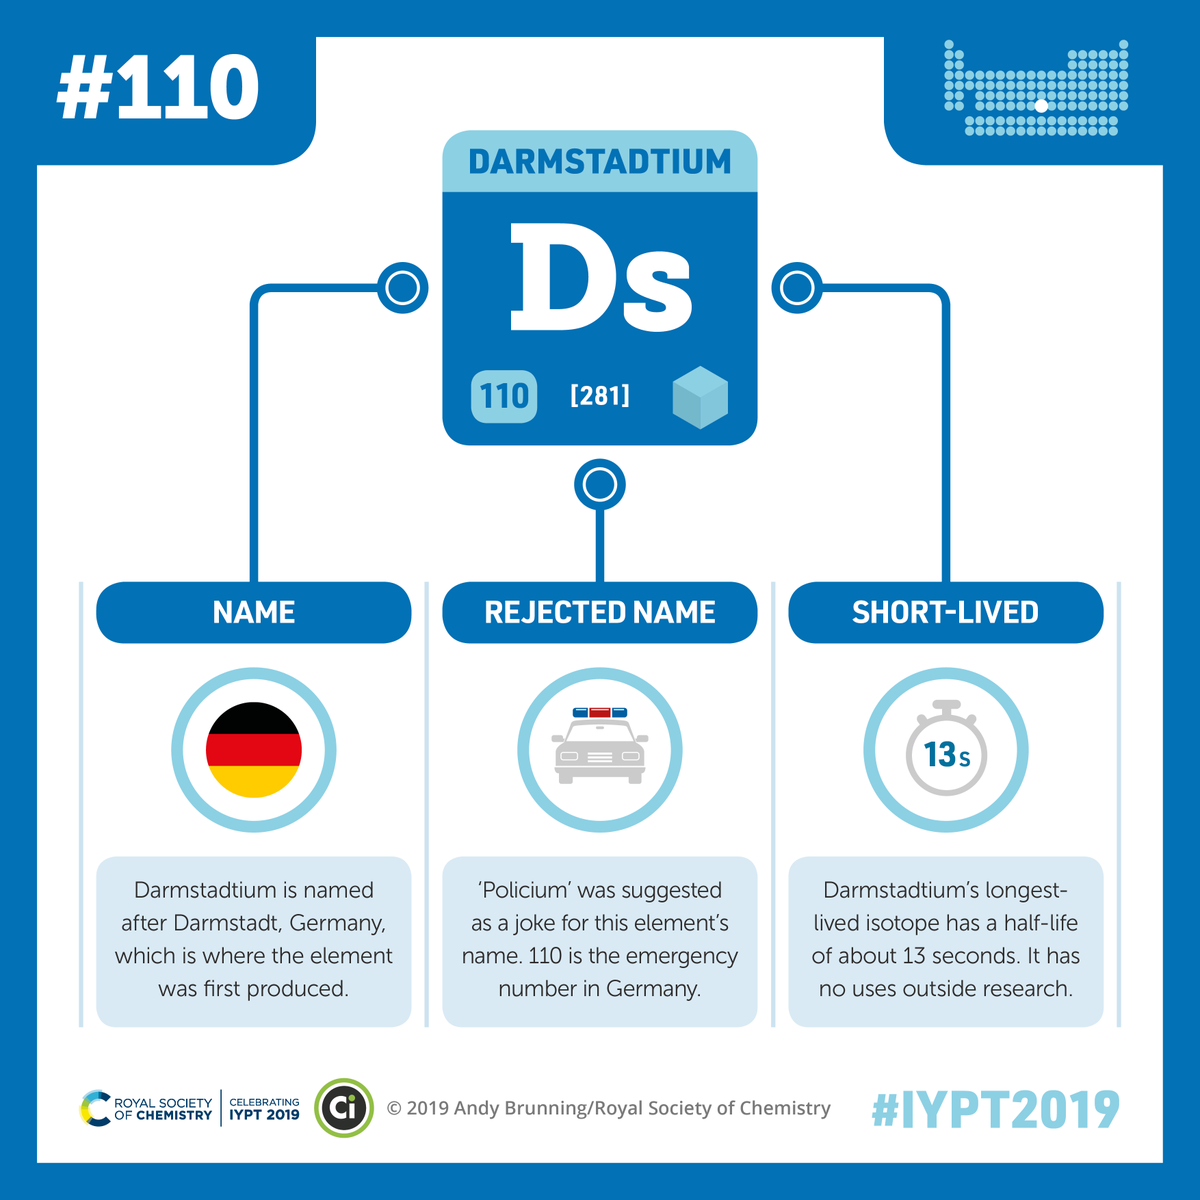 Saturday's featured element in partnership with @compoundchem is darmstadtium.   Darmstadtium is a man-made element of which only a few atoms have ever been created. #IYPT2019  Download our darmstadtium infographic today 👉